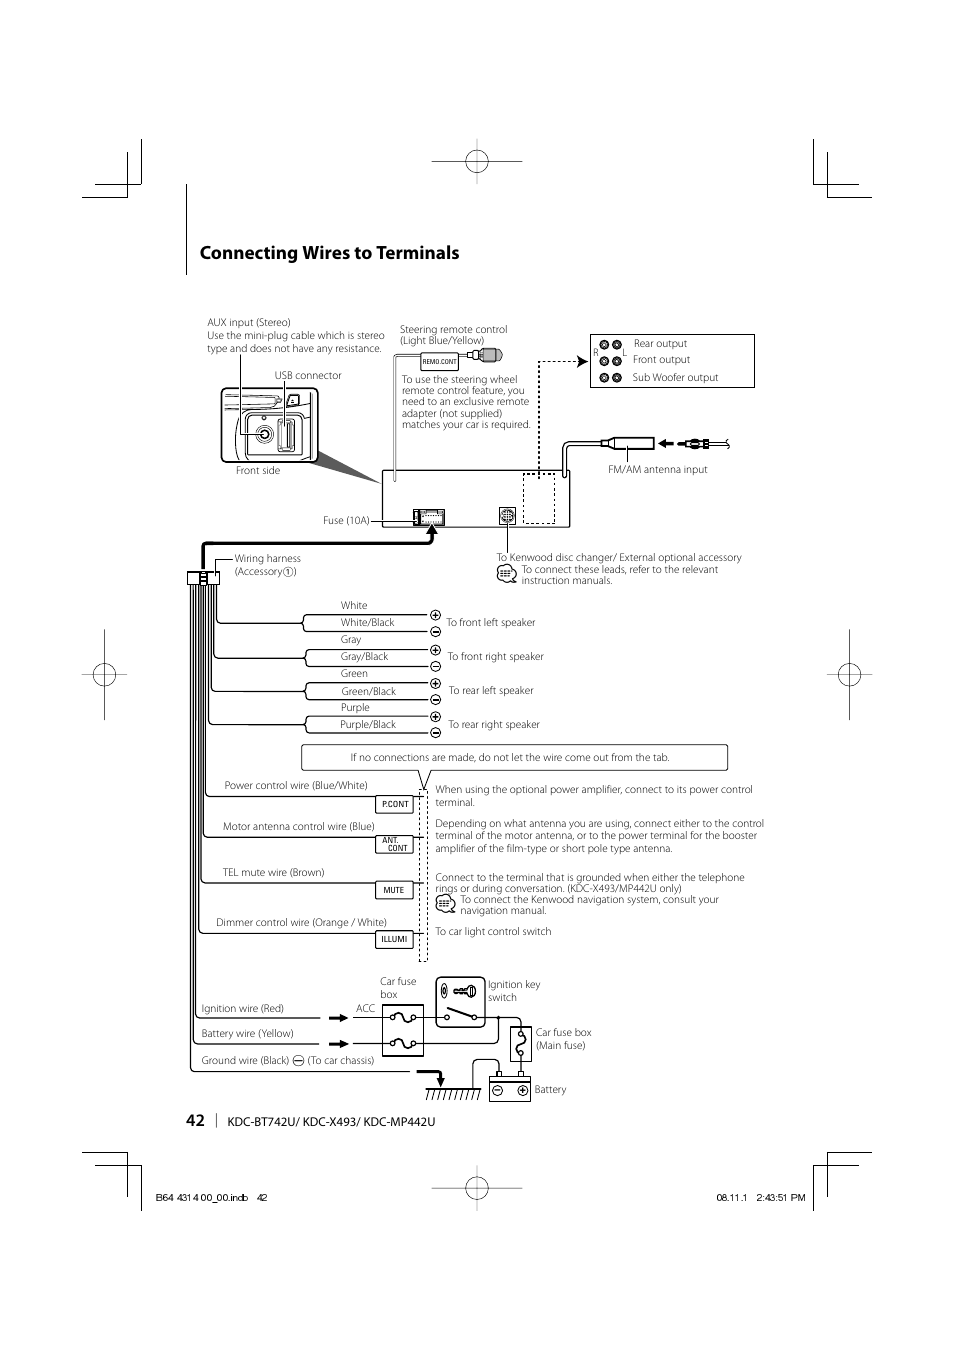 kenwood kdc bt742u page42 connecting wires to terminals kenwood kdc bt742u user manual kenwood kdc 135 wiring diagram at n-0.co